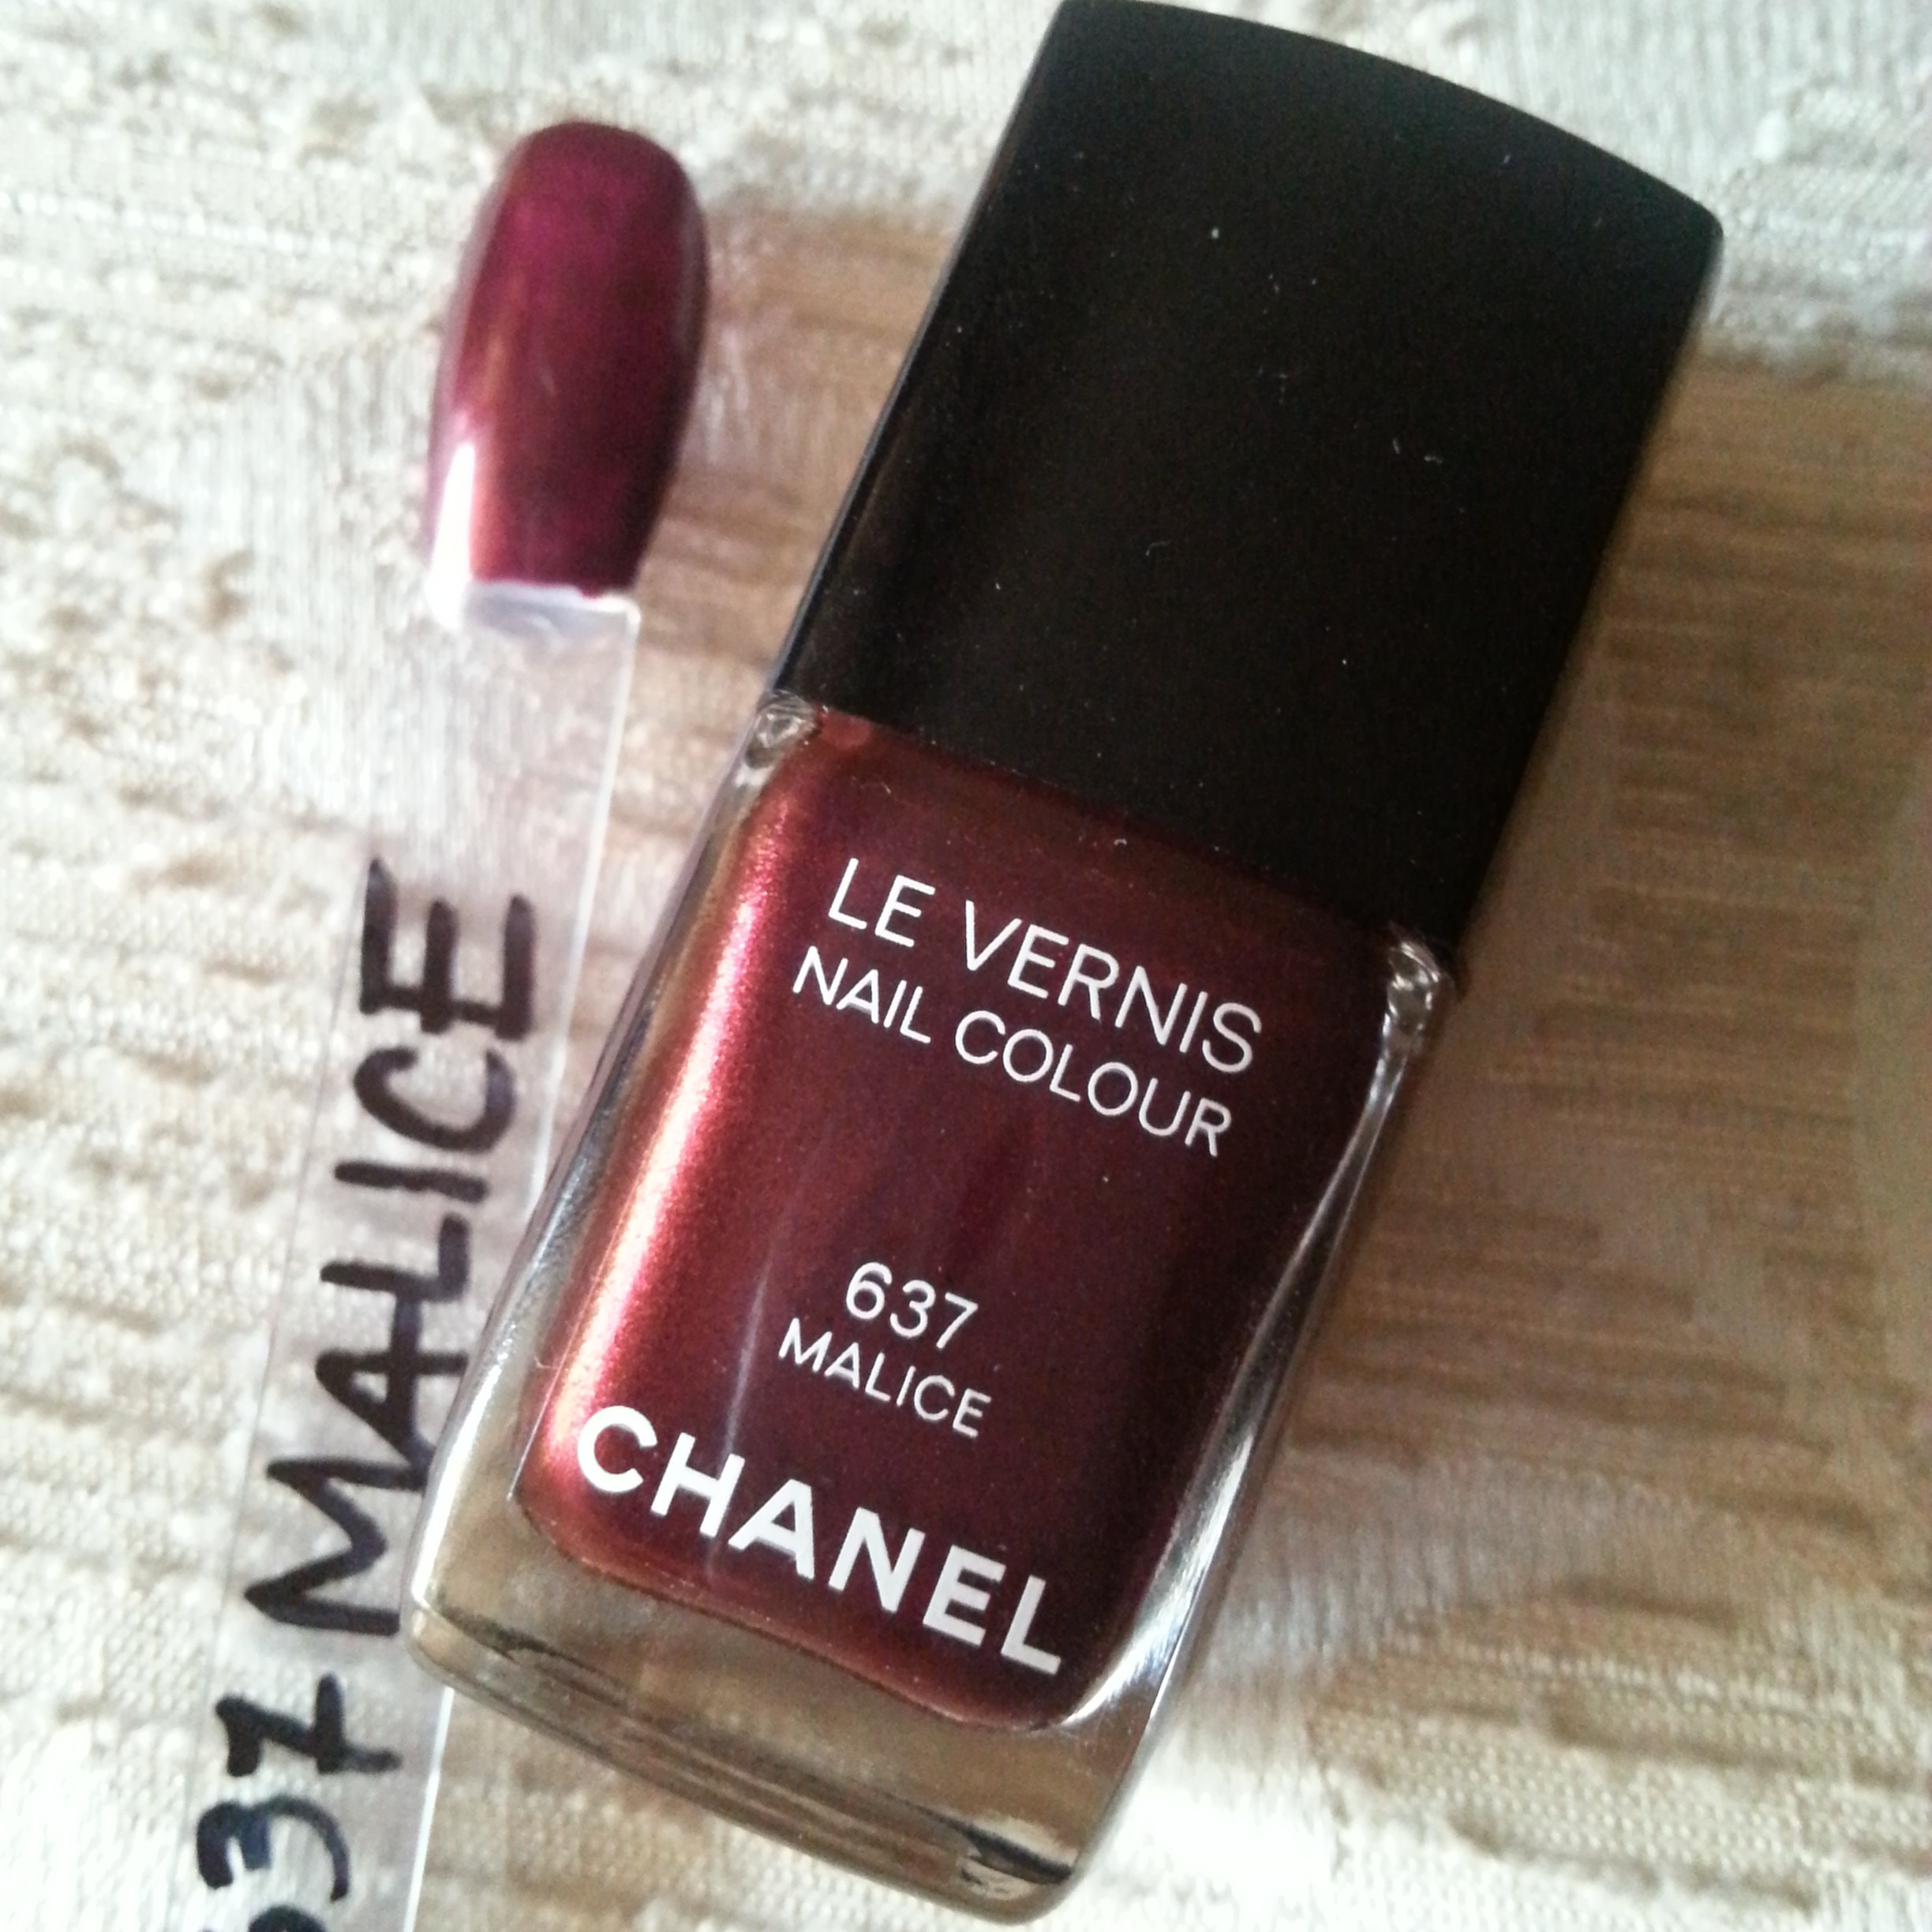 Chanel le vernis n. 637 Malice - swatch